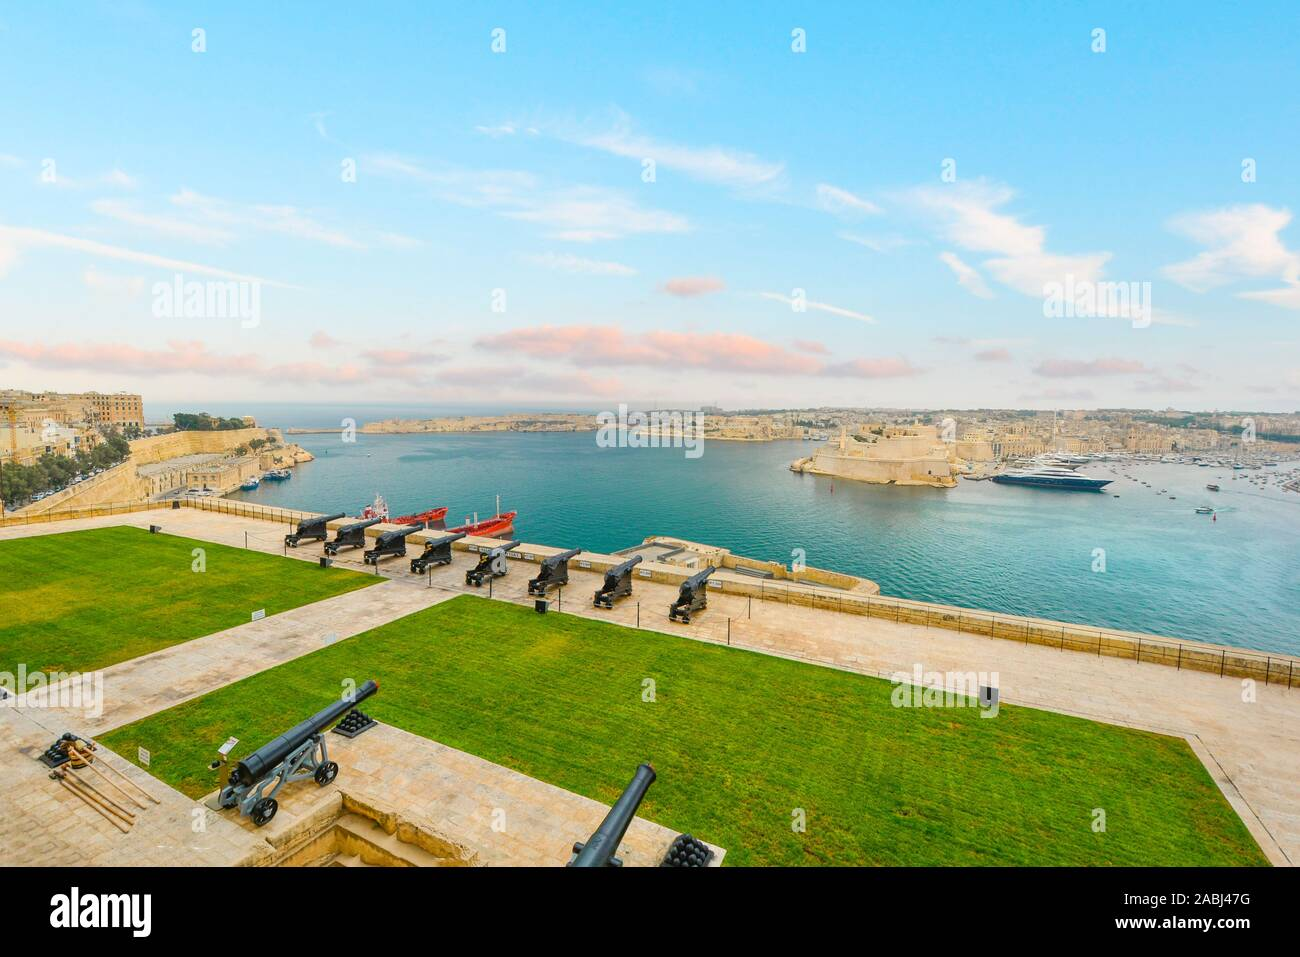 Saluting battery cannons guarding the harbor and city of Valletta on the mediterranean island of Malta Stock Photo